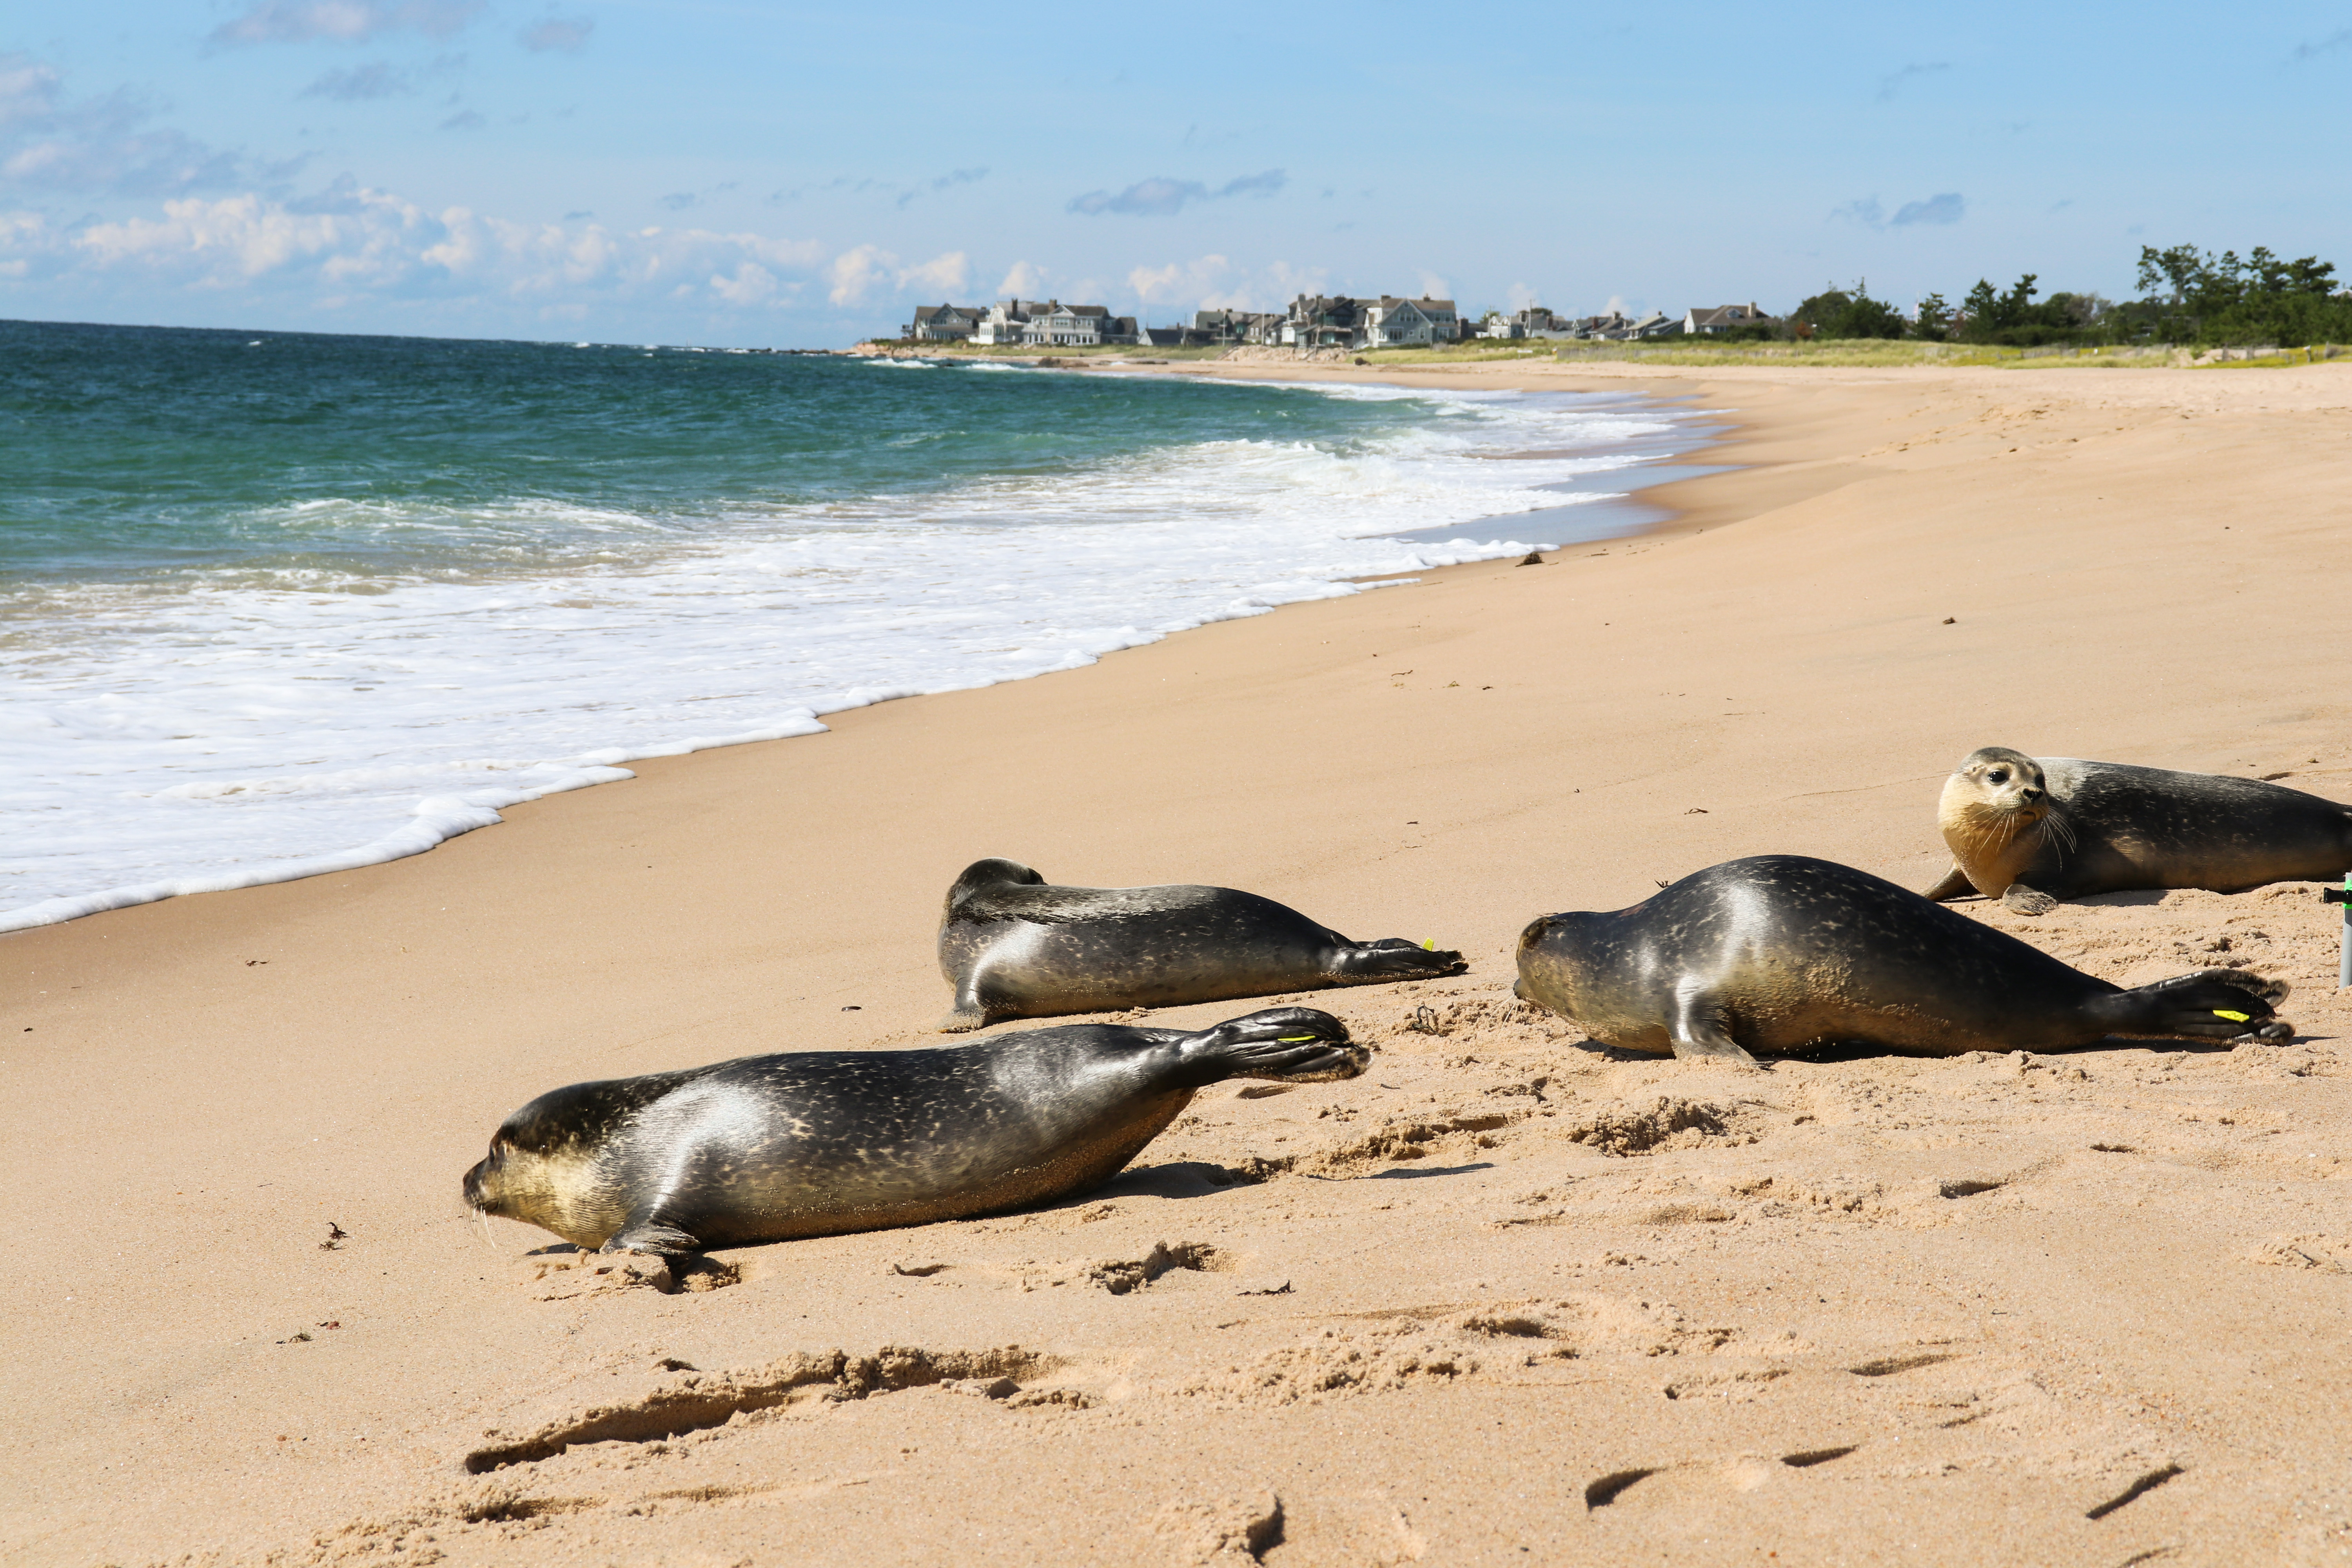 Friday the 13th Lucky Day for Four Harbor Seals Thanks to Mystic Aquarium's Animal Rescue Program